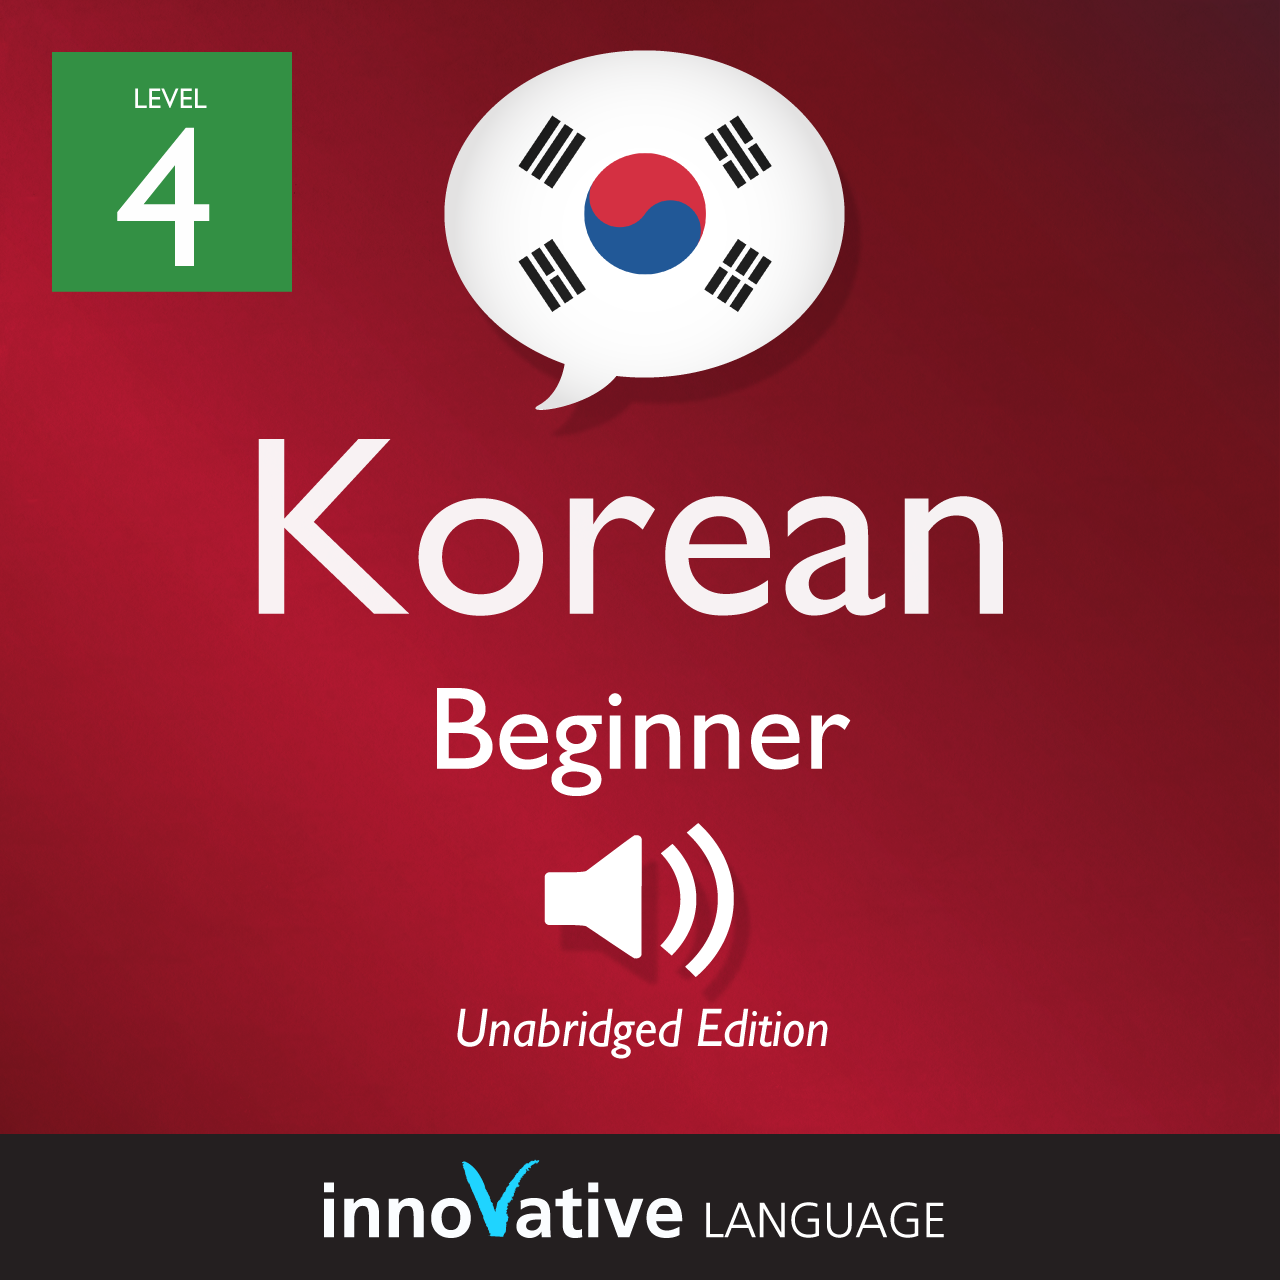 [Audiobook] Learn Korean - Level 4: Beginner Korean, Volume 2